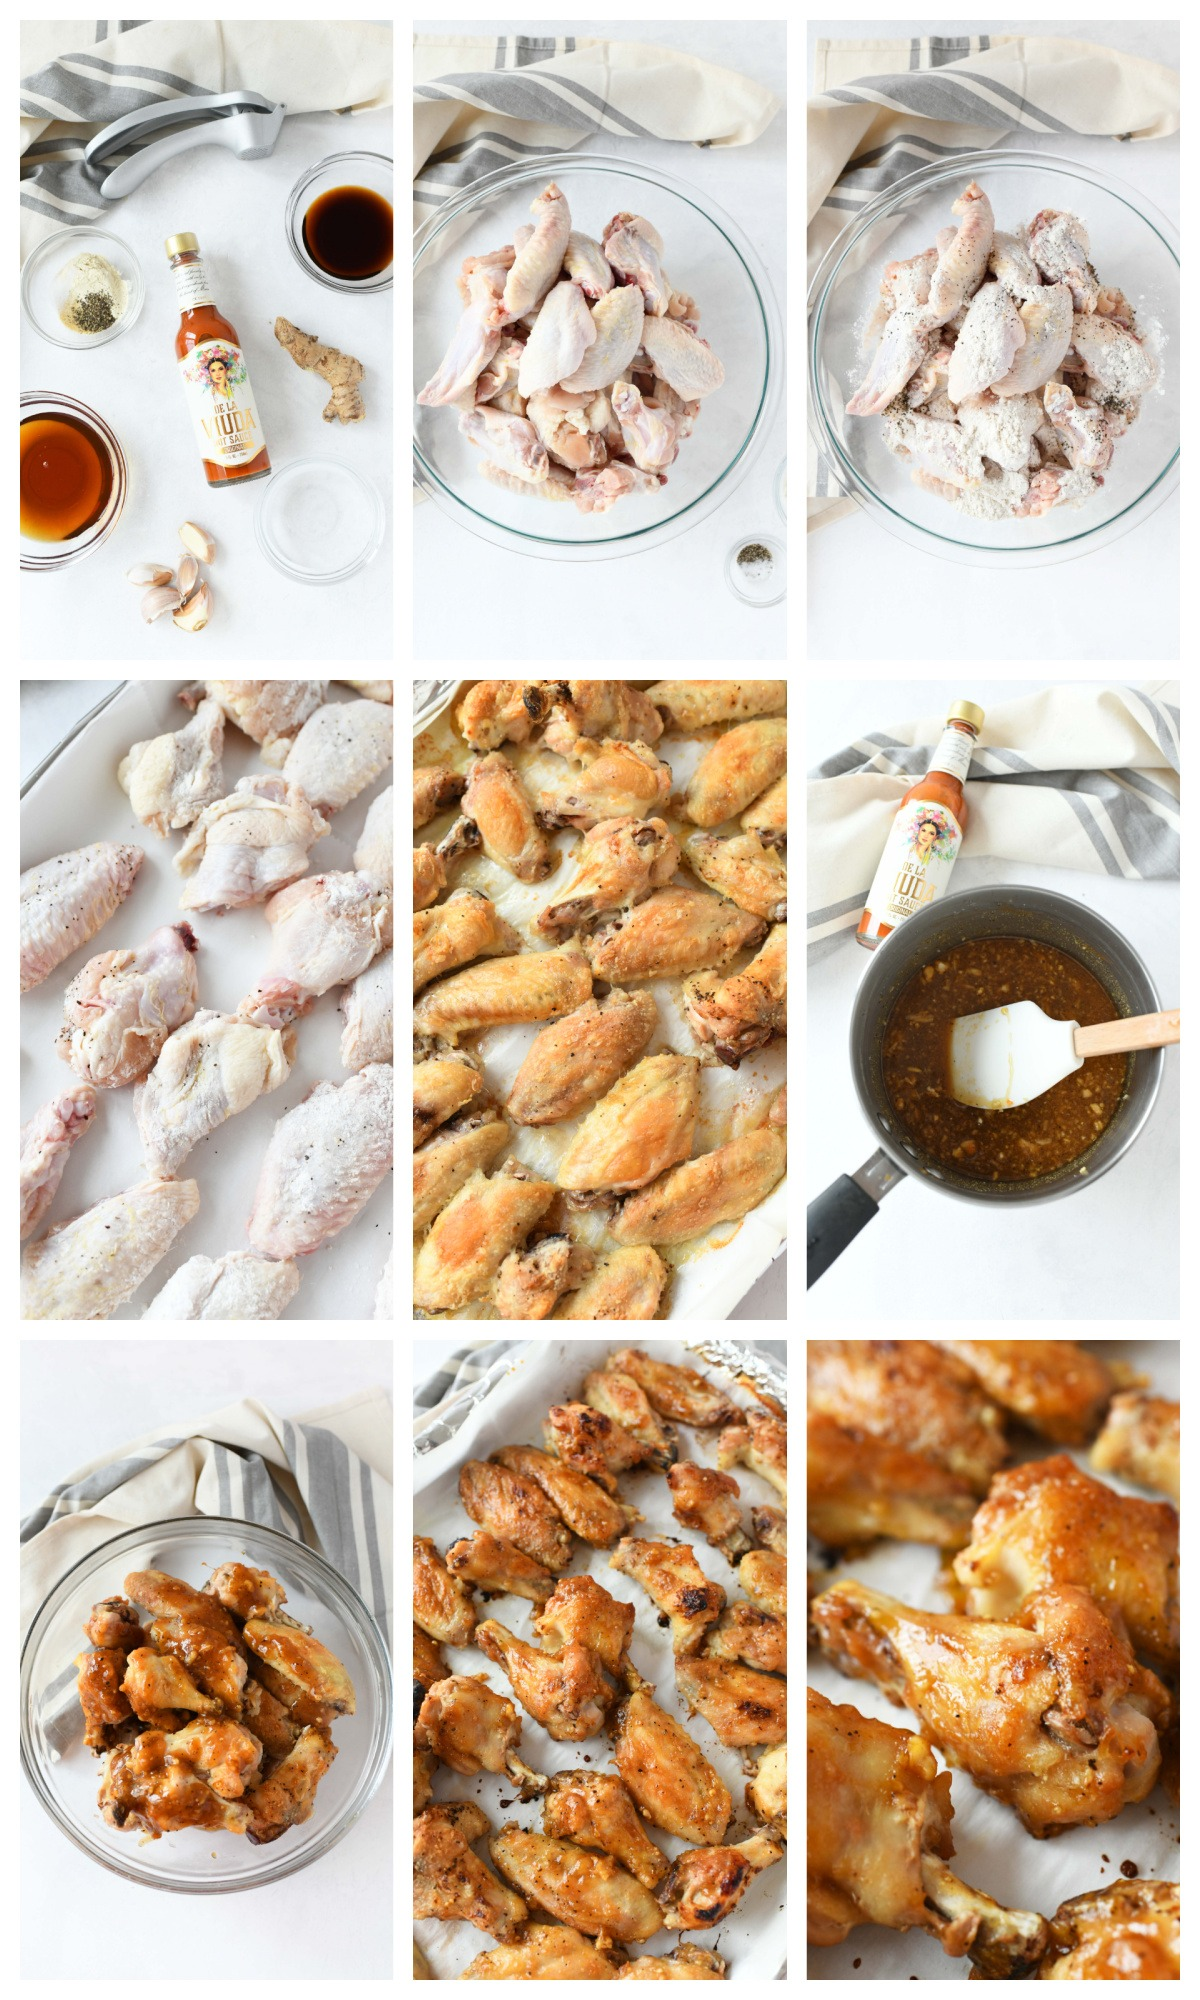 A nine image collage of the steps to making Honey Garlic Baked Wings